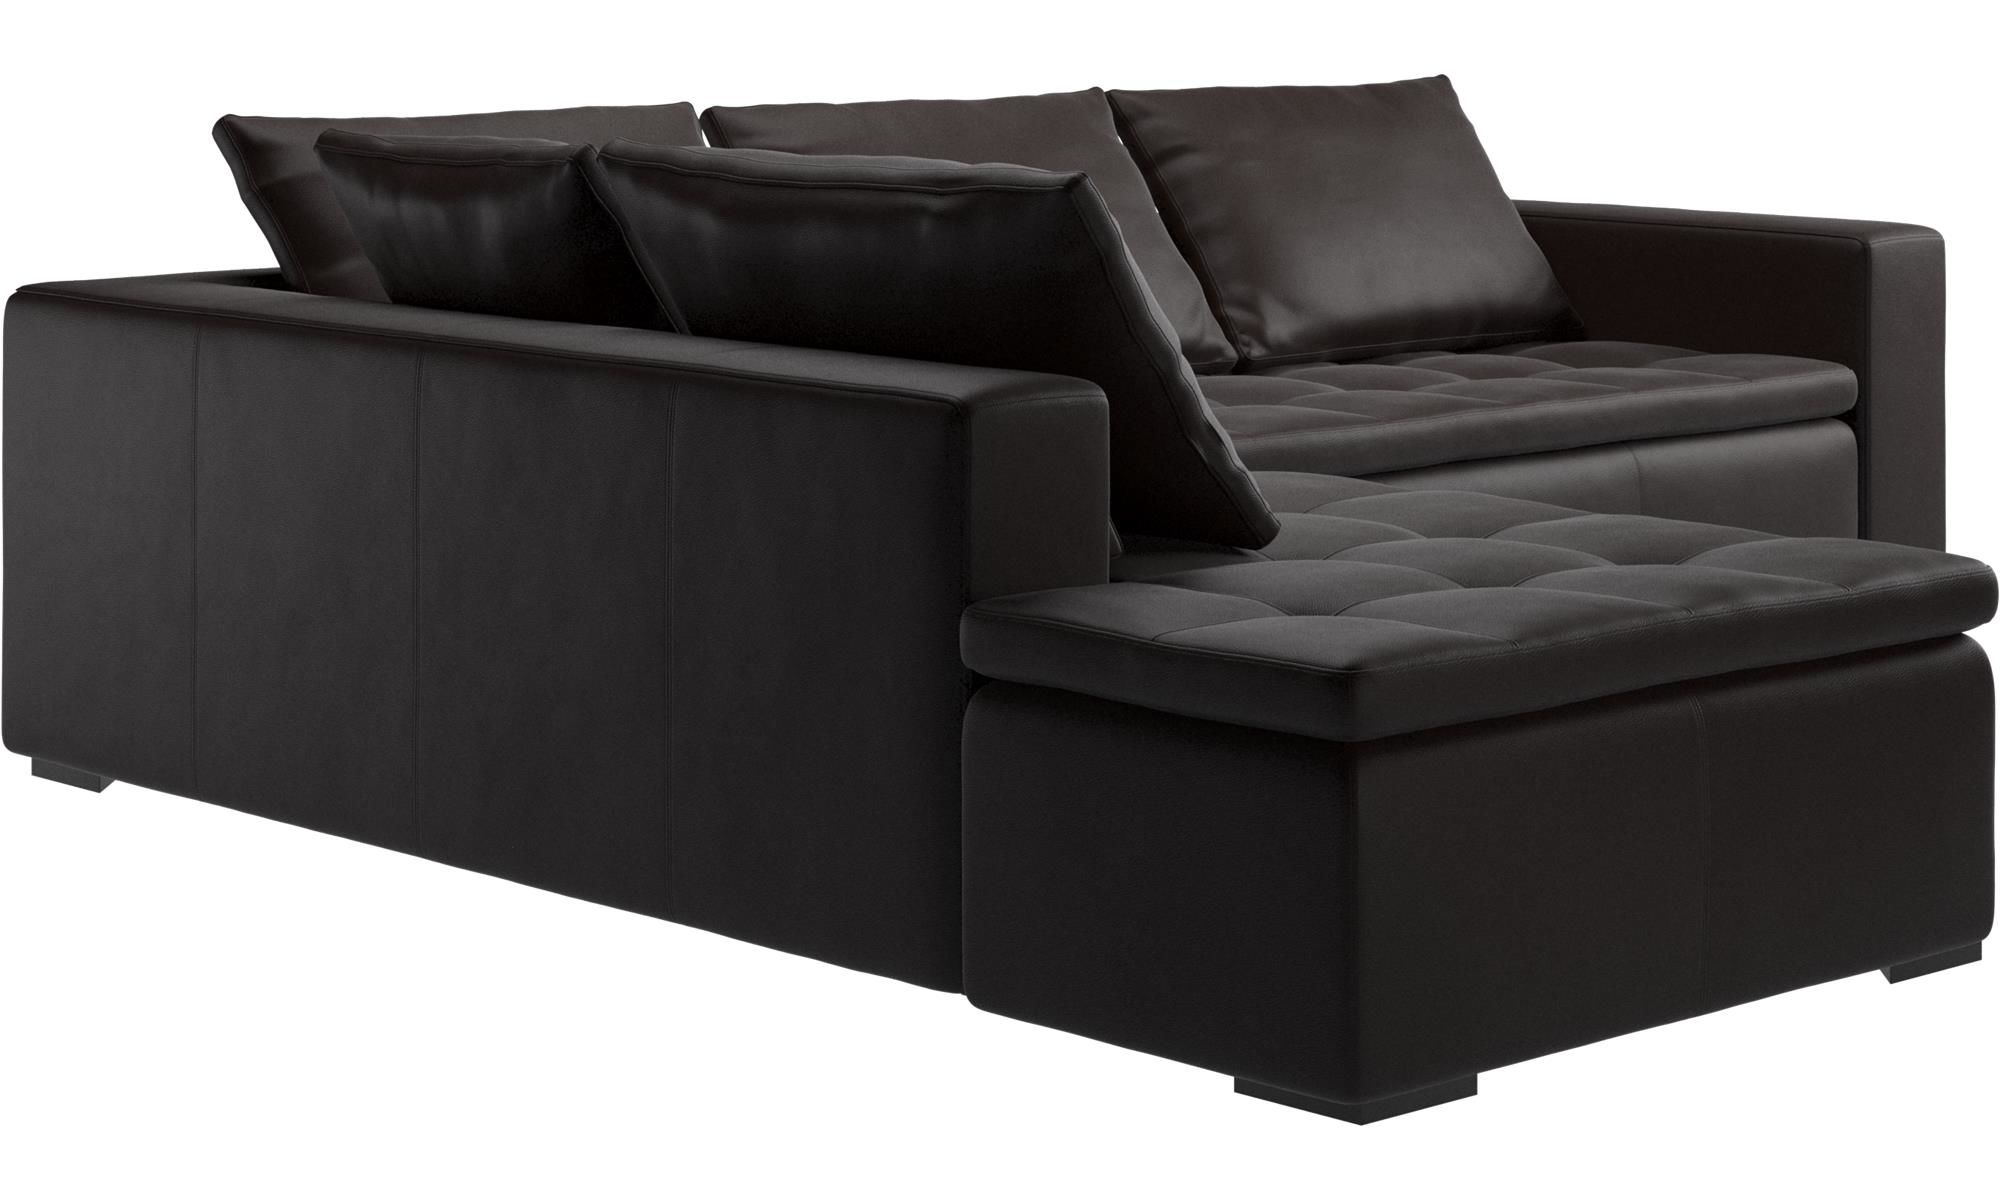 stunning value city sectional sofa concept-Luxury Value City Sectional sofa Décor